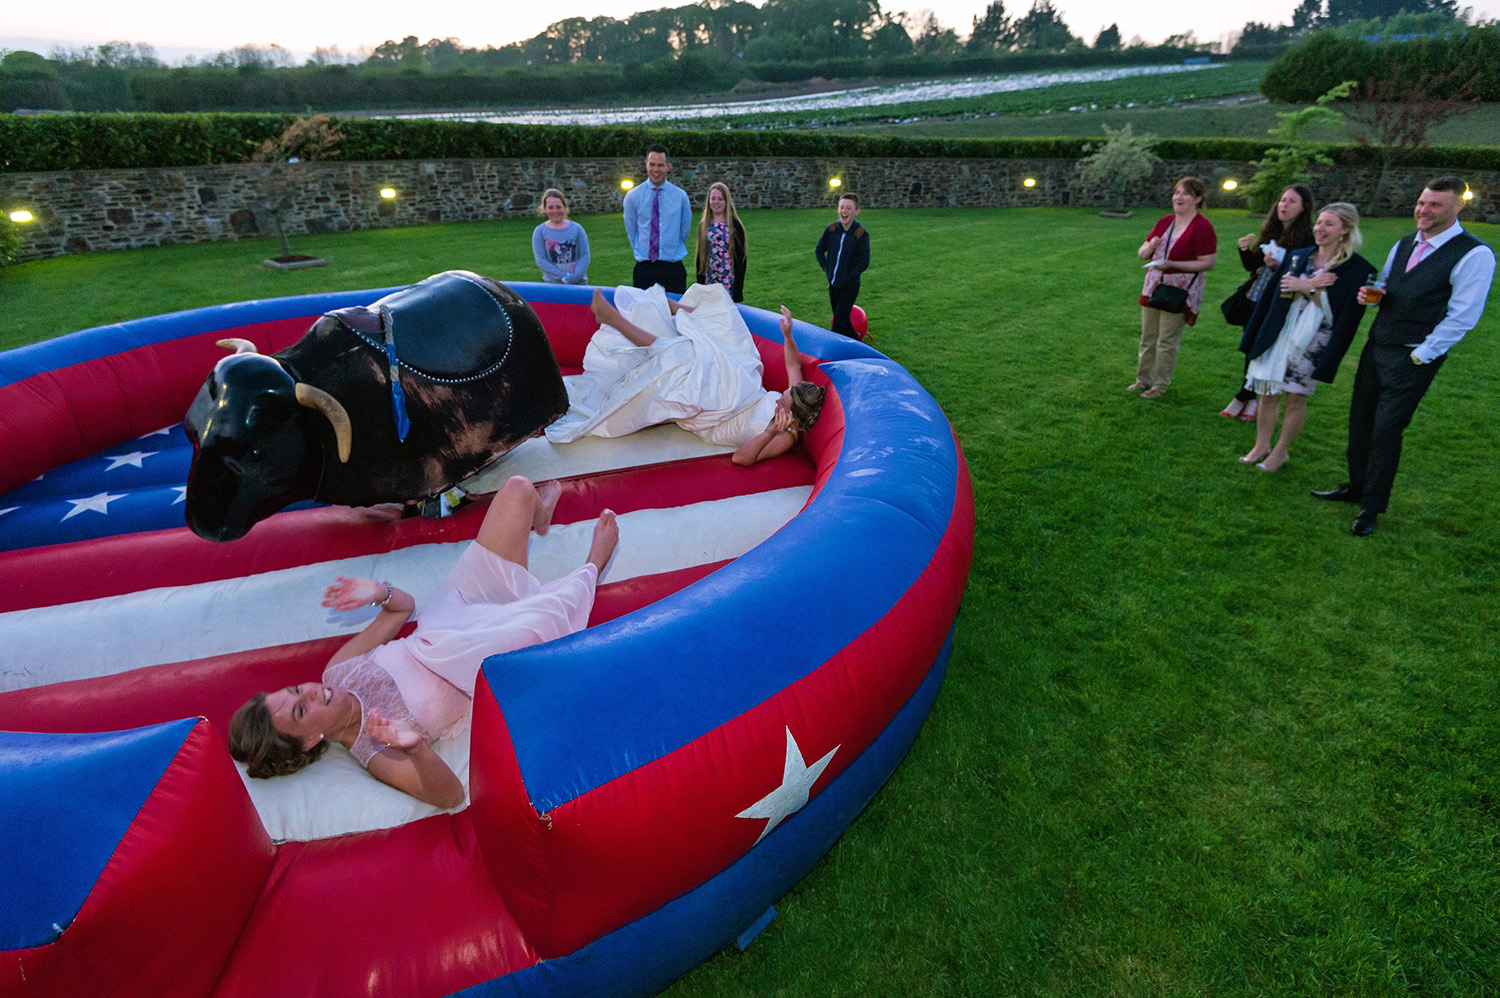 Bride and bridesmaid fall off bucking bronco at Lifton wedding in devon